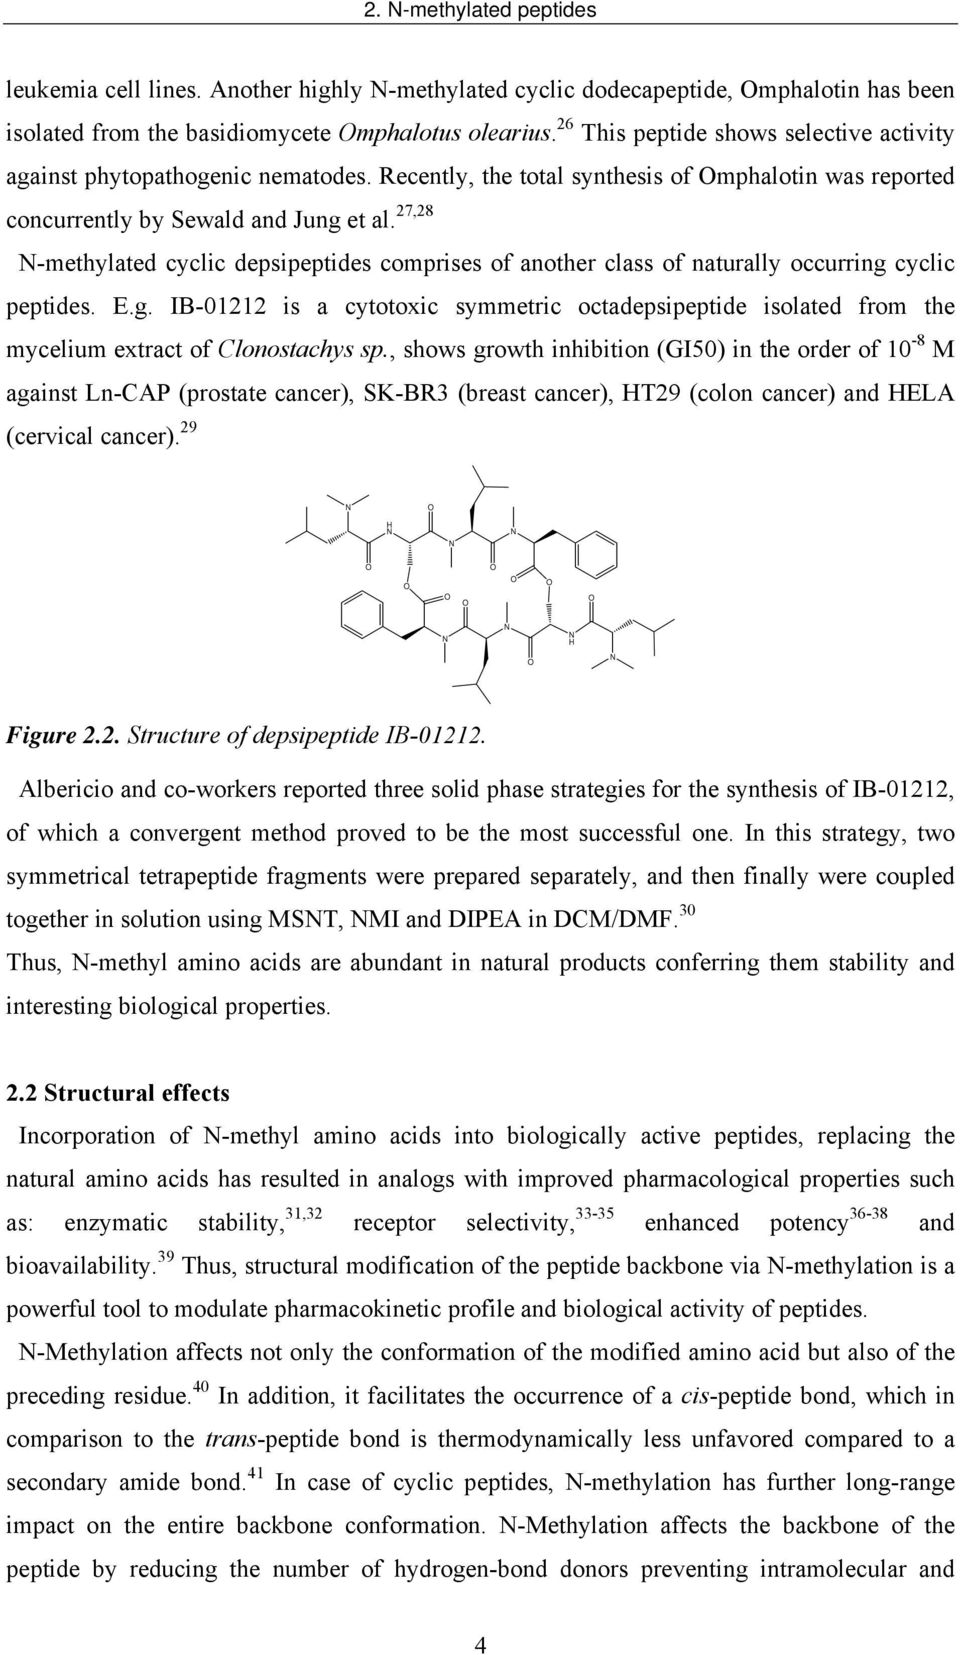 27,28 -methylated cyclic depsipeptides comprises of another class of naturally occurring cyclic peptides. E.g. IB-01212 is a cytotoxic symmetric octadepsipeptide isolated from the mycelium extract of Clonostachys sp.